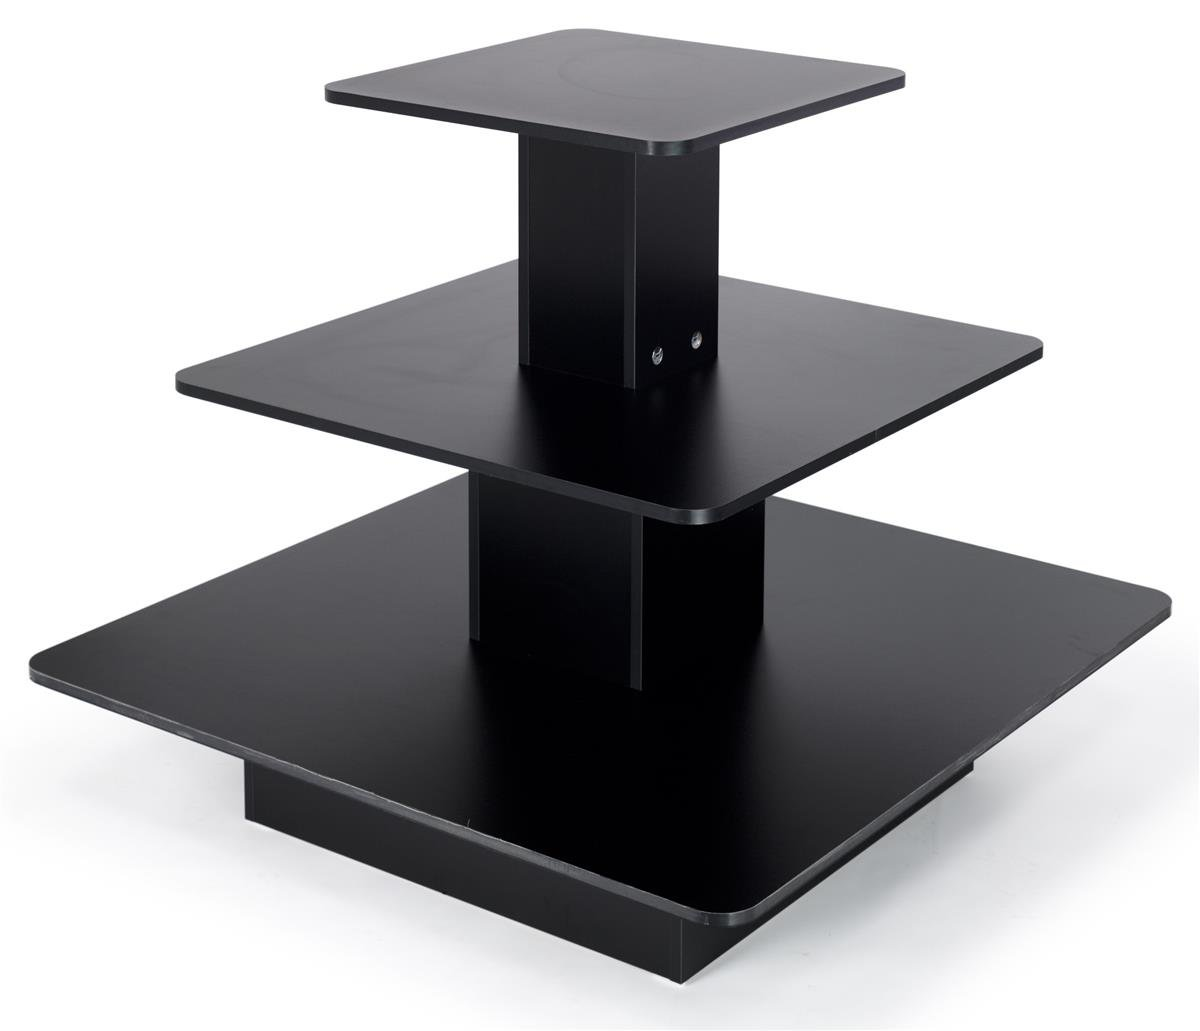 Displays2go 48 x 48 Inch Three-Tiered Display Table, Square - Black (3TST4848BK) by Displays2go (Image #1)